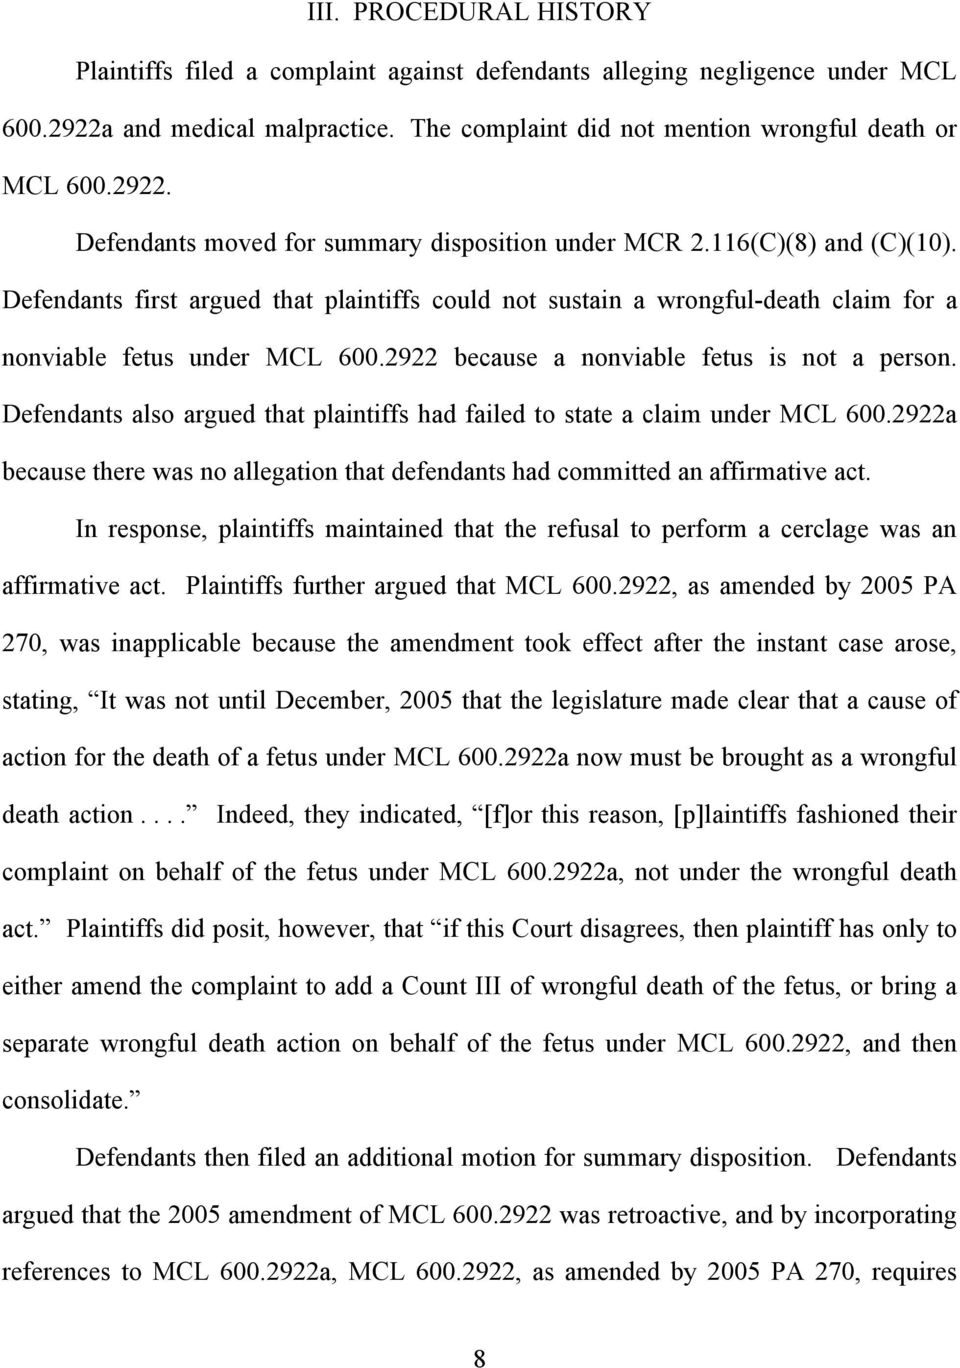 Defendants also argued that plaintiffs had failed to state a claim under MCL 600.2922a because there was no allegation that defendants had committed an affirmative act.